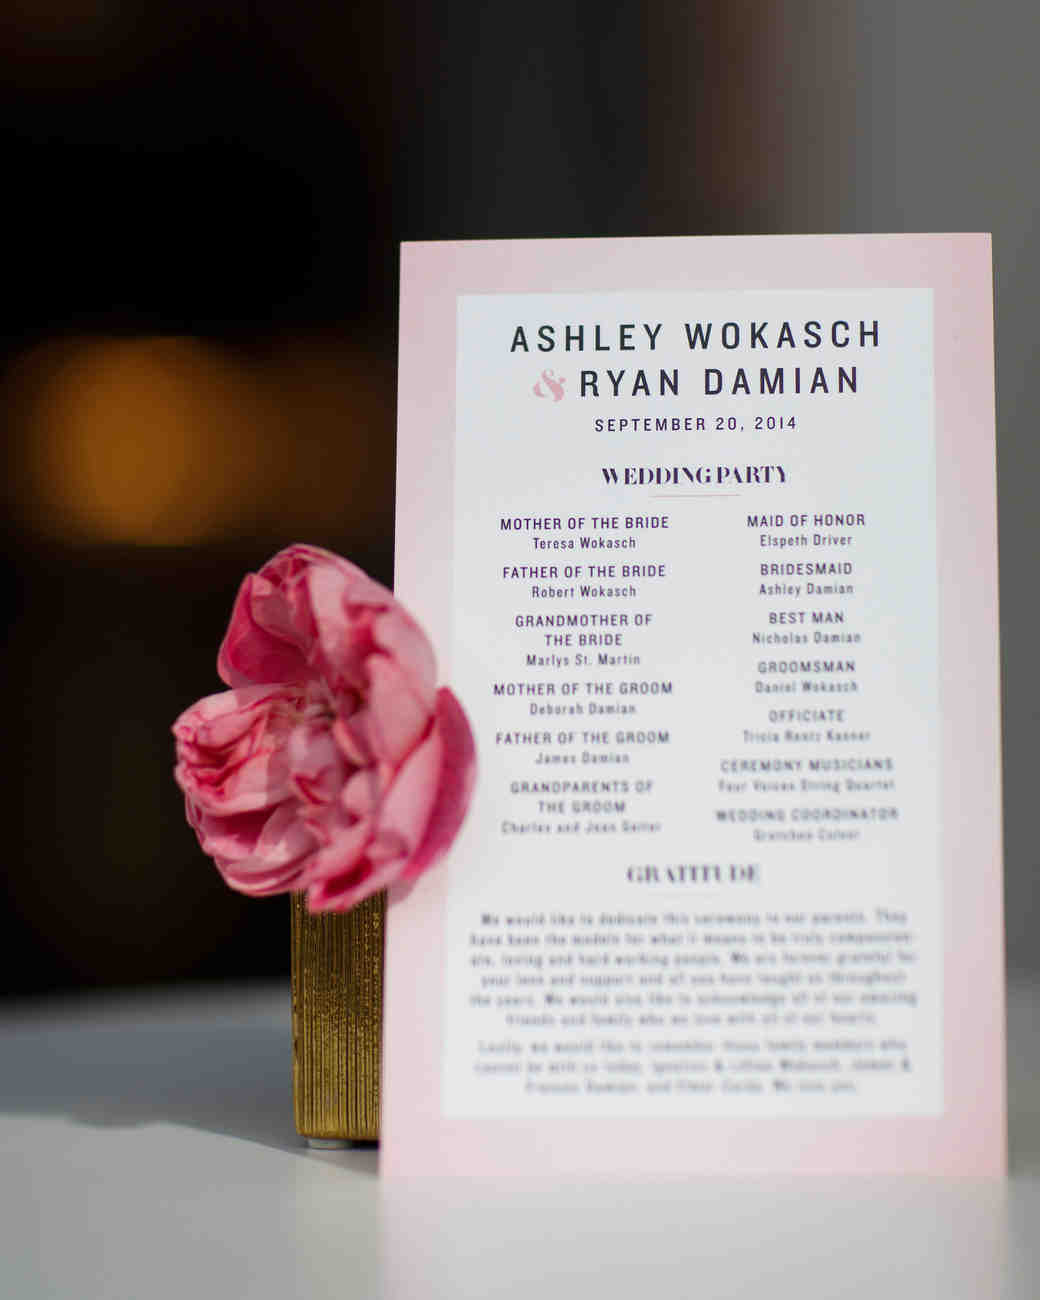 ashley-ryan-wedding-program-11159-s111852-0415.jpg